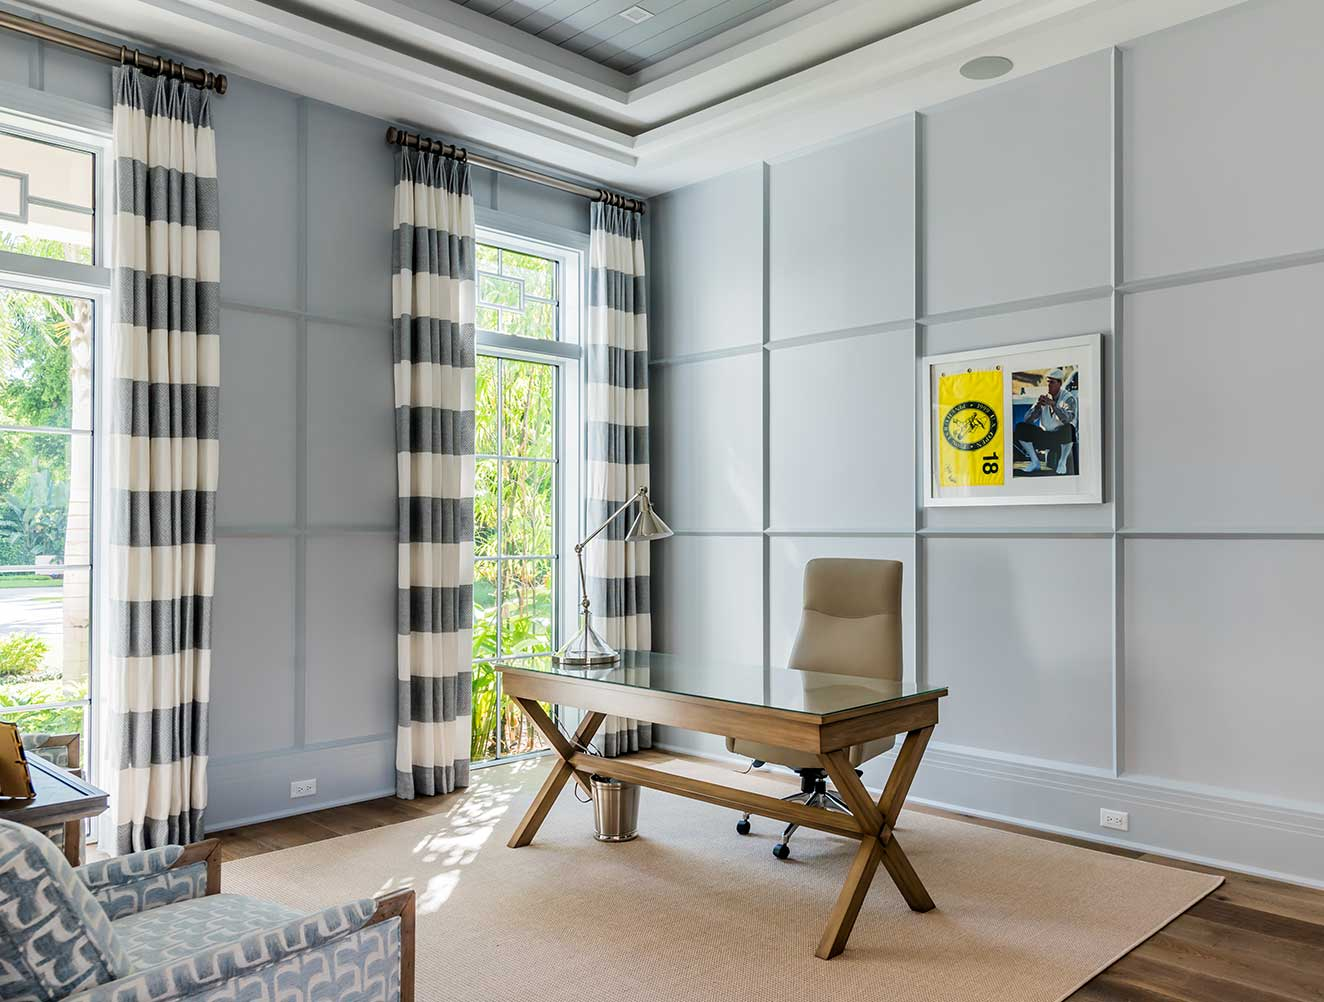 Home office of Fort Charles Estate in Naples Florida, single family home designed by Kukk Architecture & Design Naples Architecture Firm